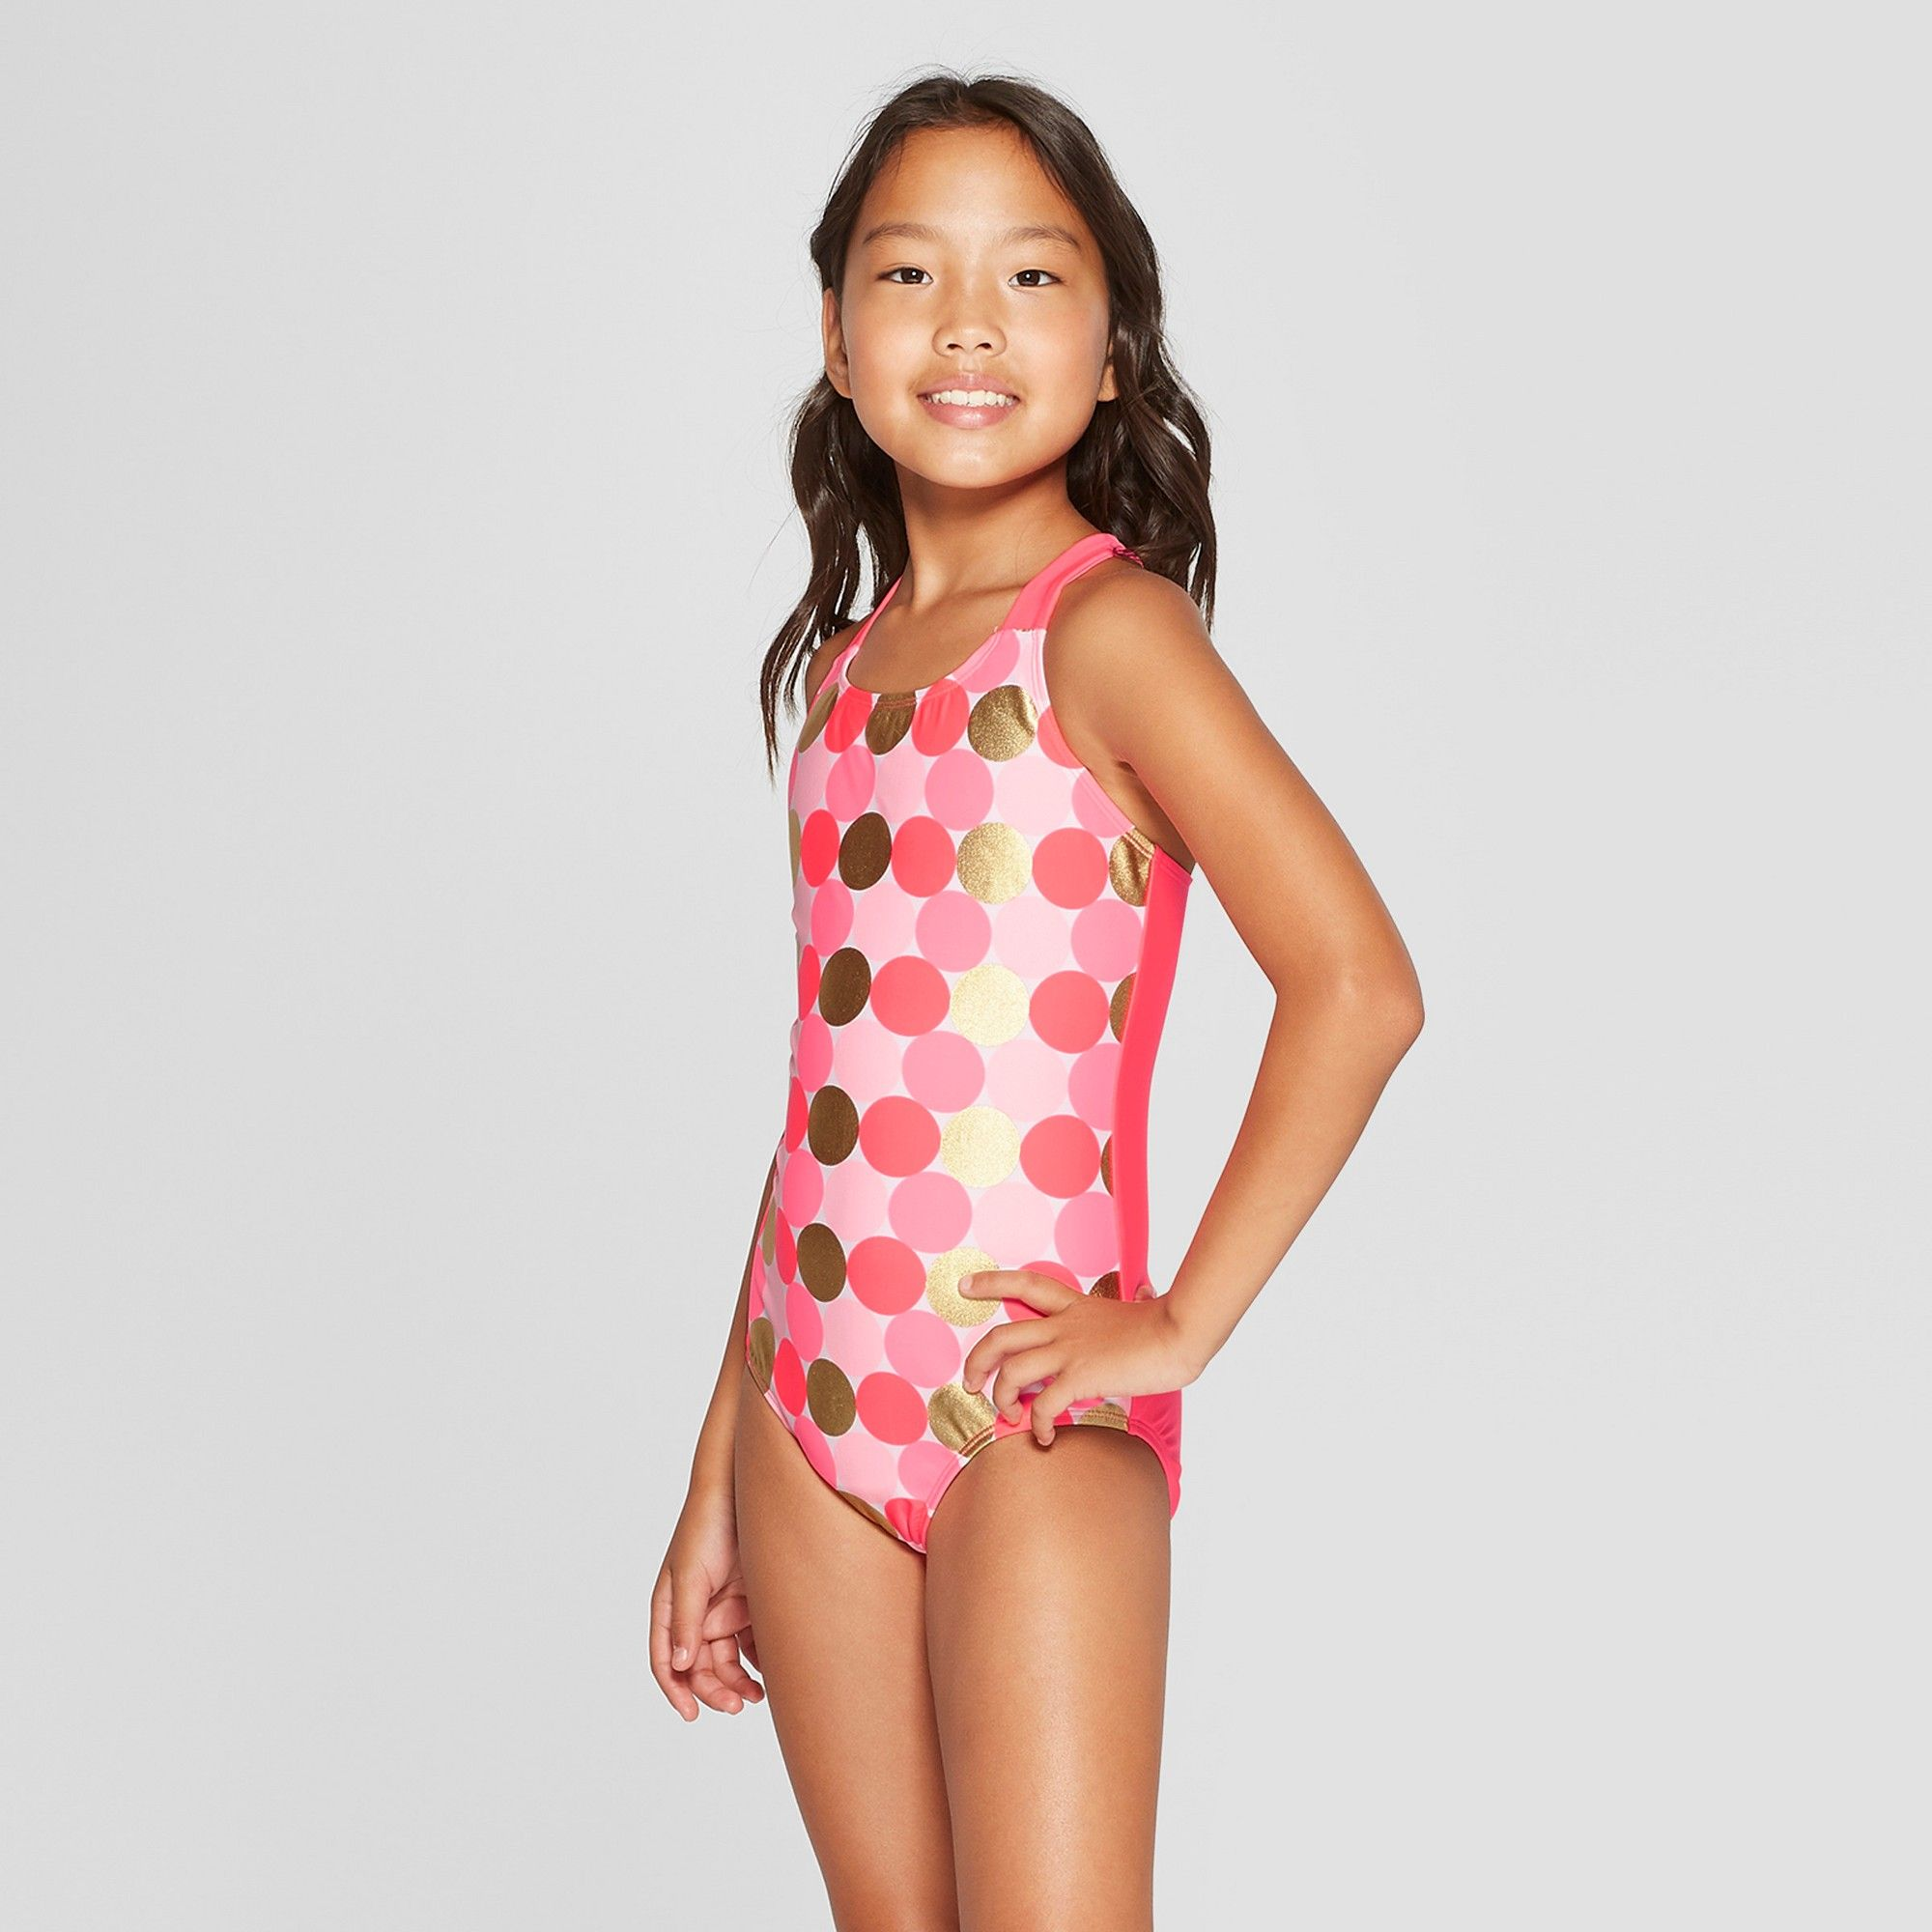 ed690143e8 Girls' One Piece Swimsuit - Cat & Jack Pink S, Girl's, Size: Small ...